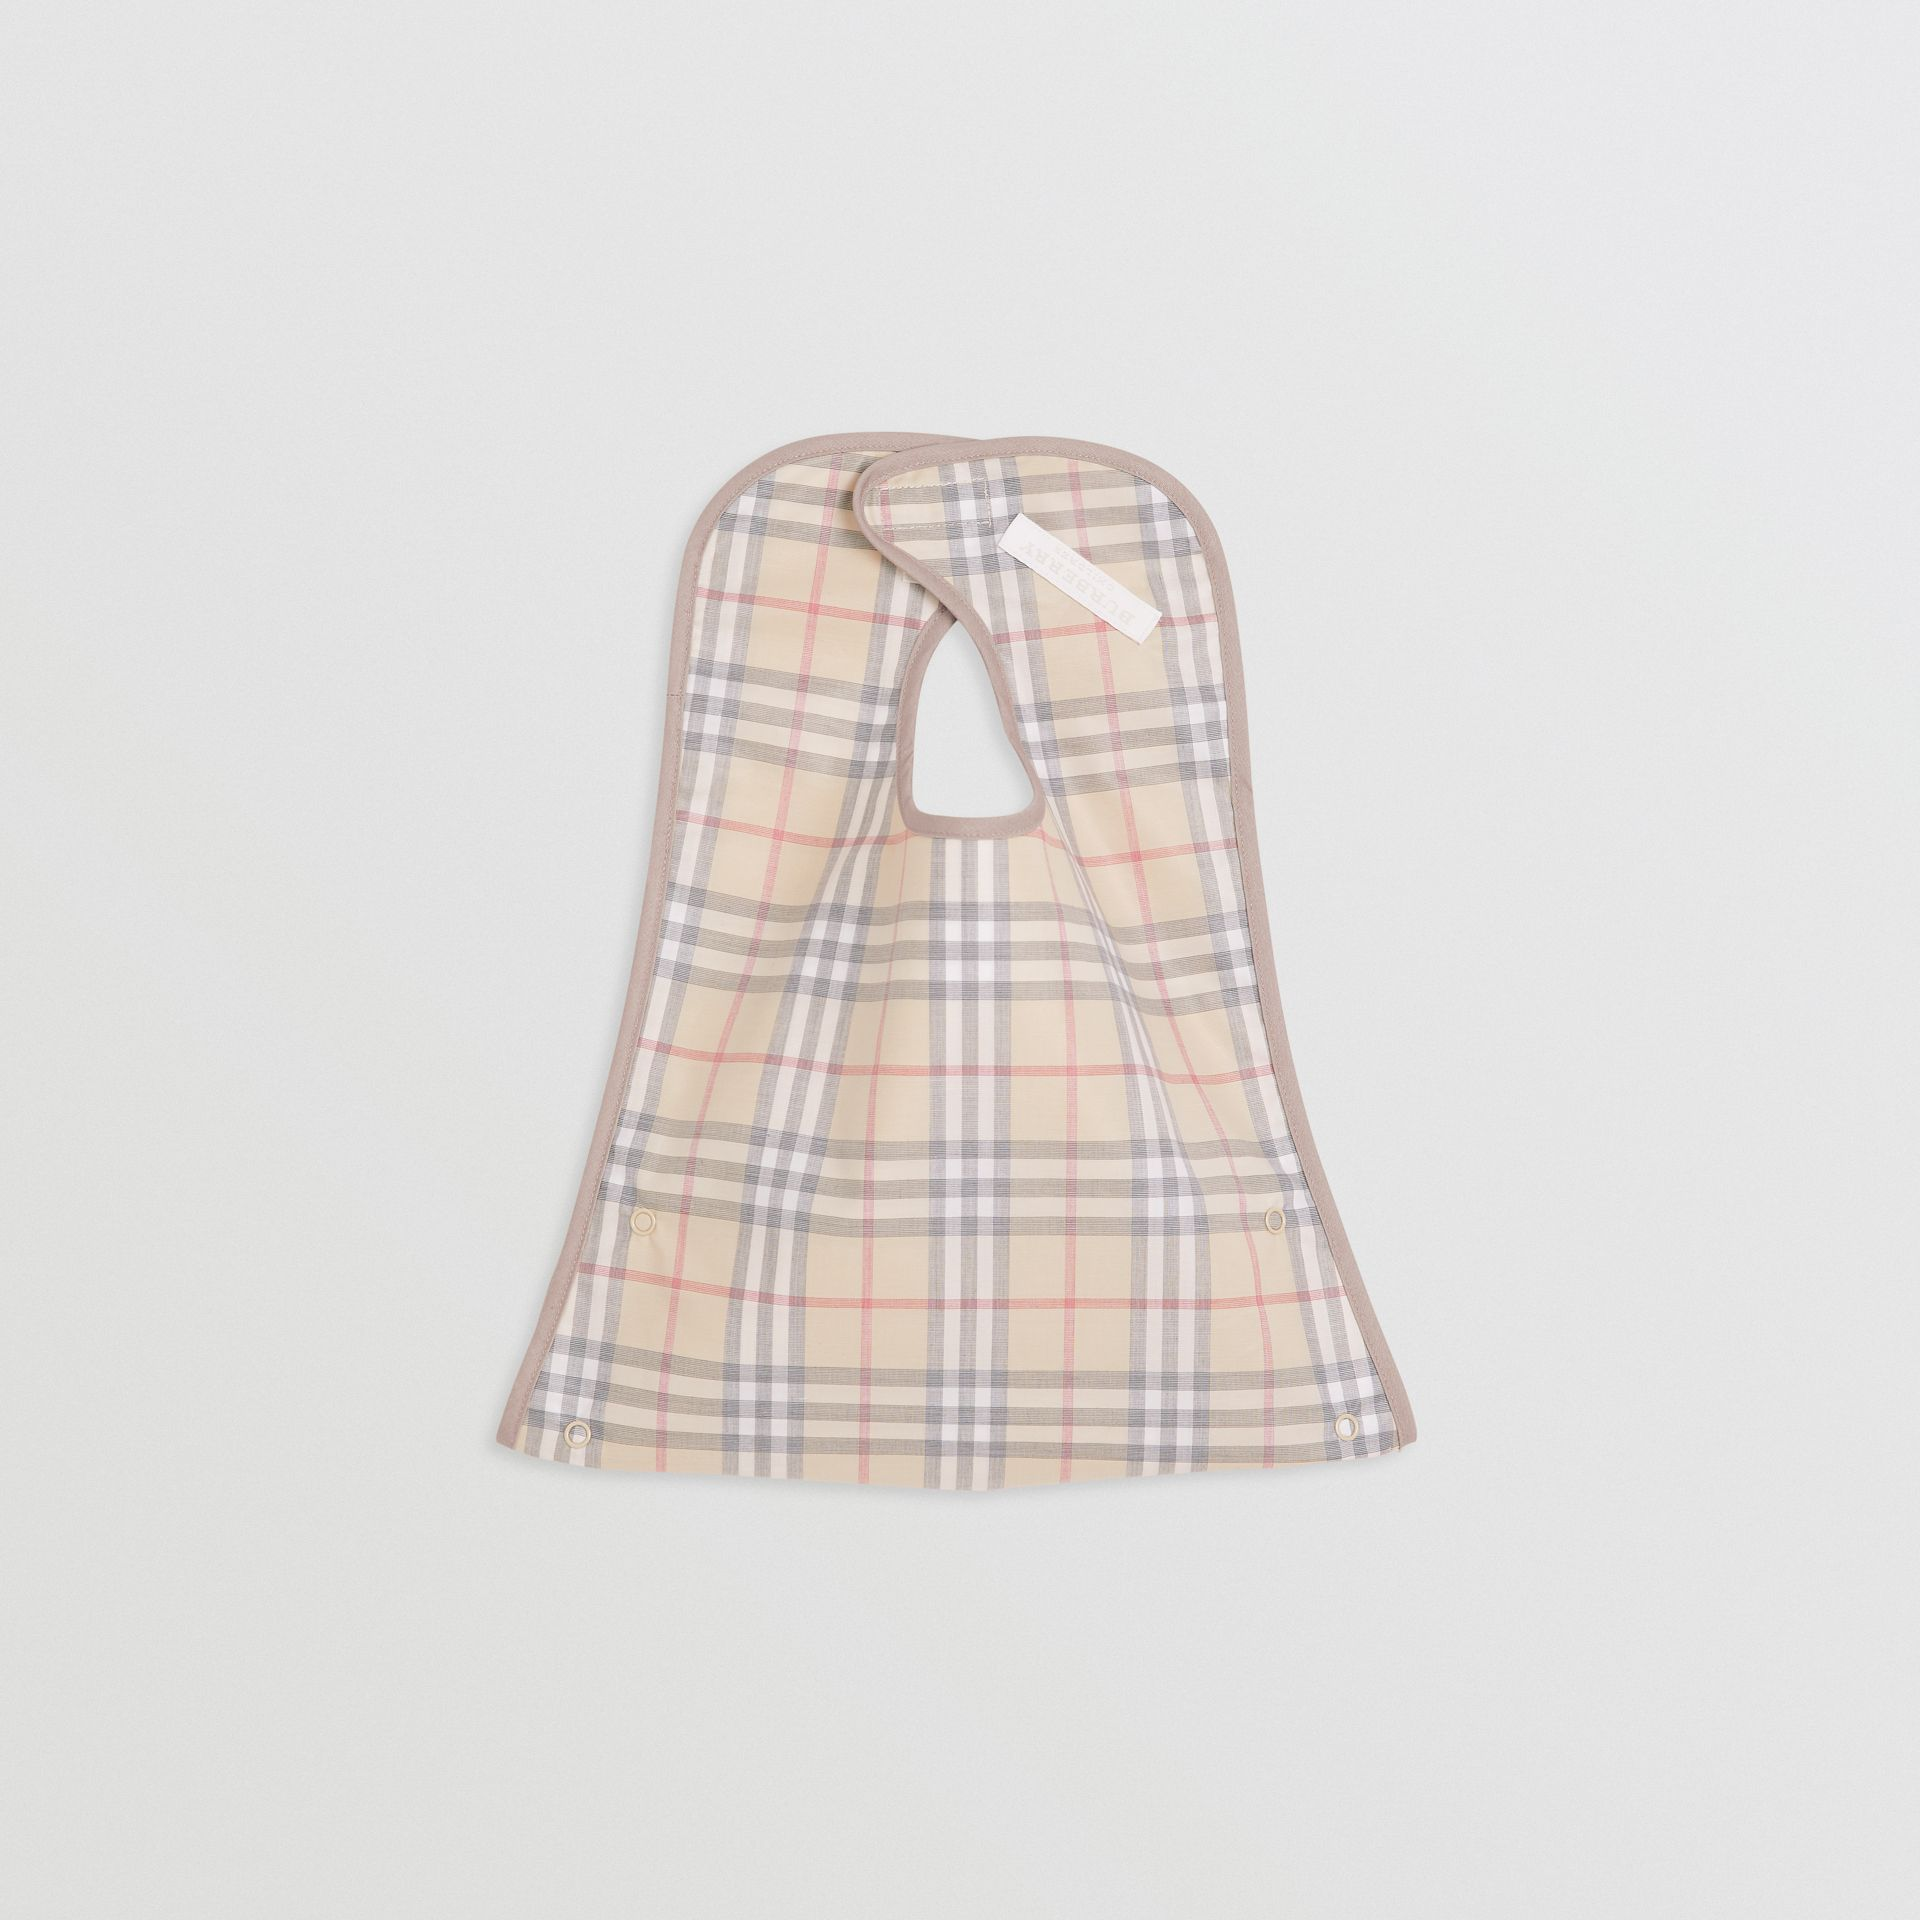 Coated Check Cotton Baby Bib in Pale Stone - Children | Burberry United Kingdom - gallery image 2